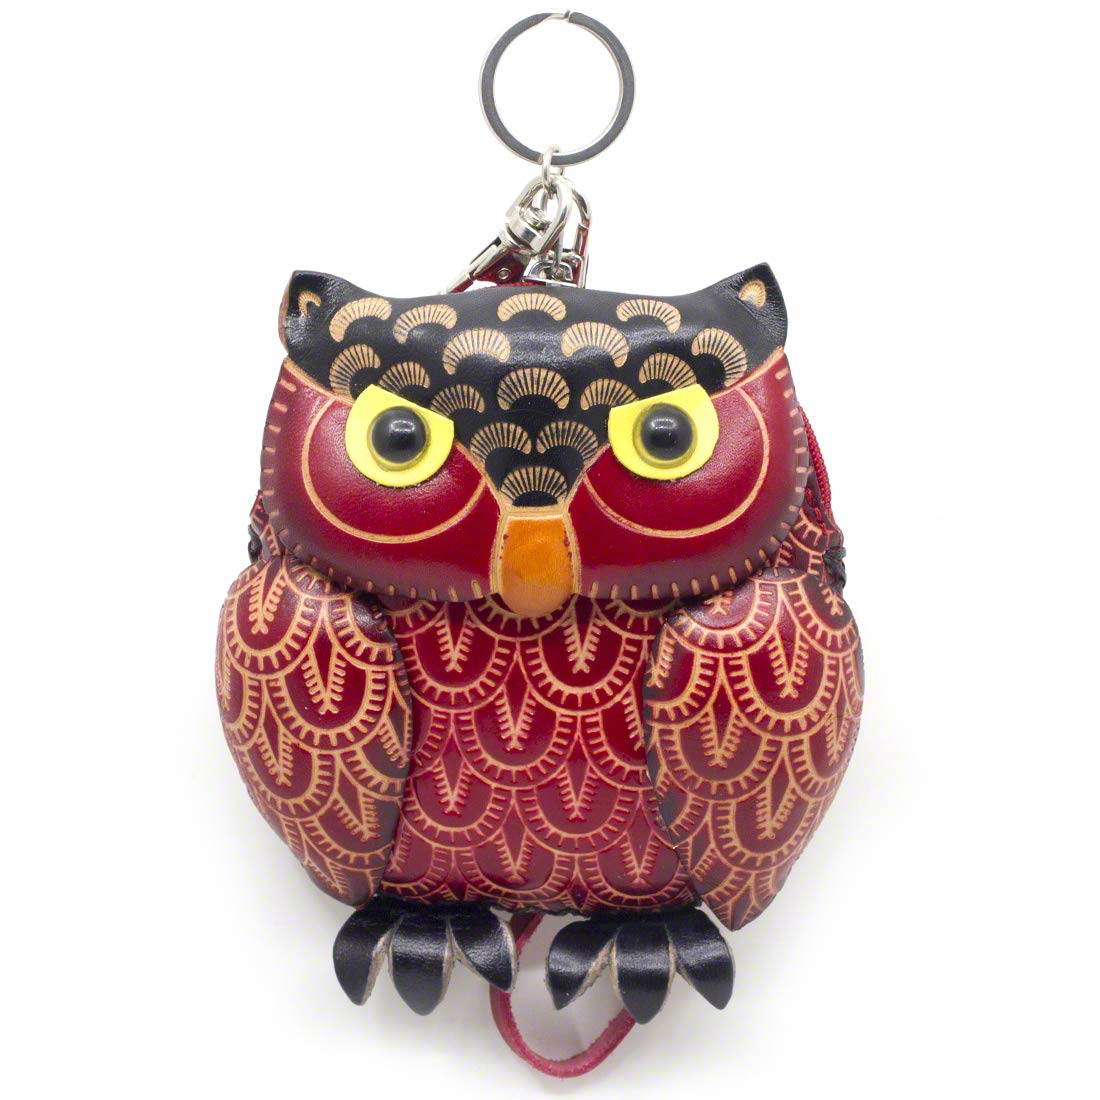 MOREFUN Owl Leather Mini Coin Purse Zipper Bag Keychain Animal Wallet Strap Pouch 01